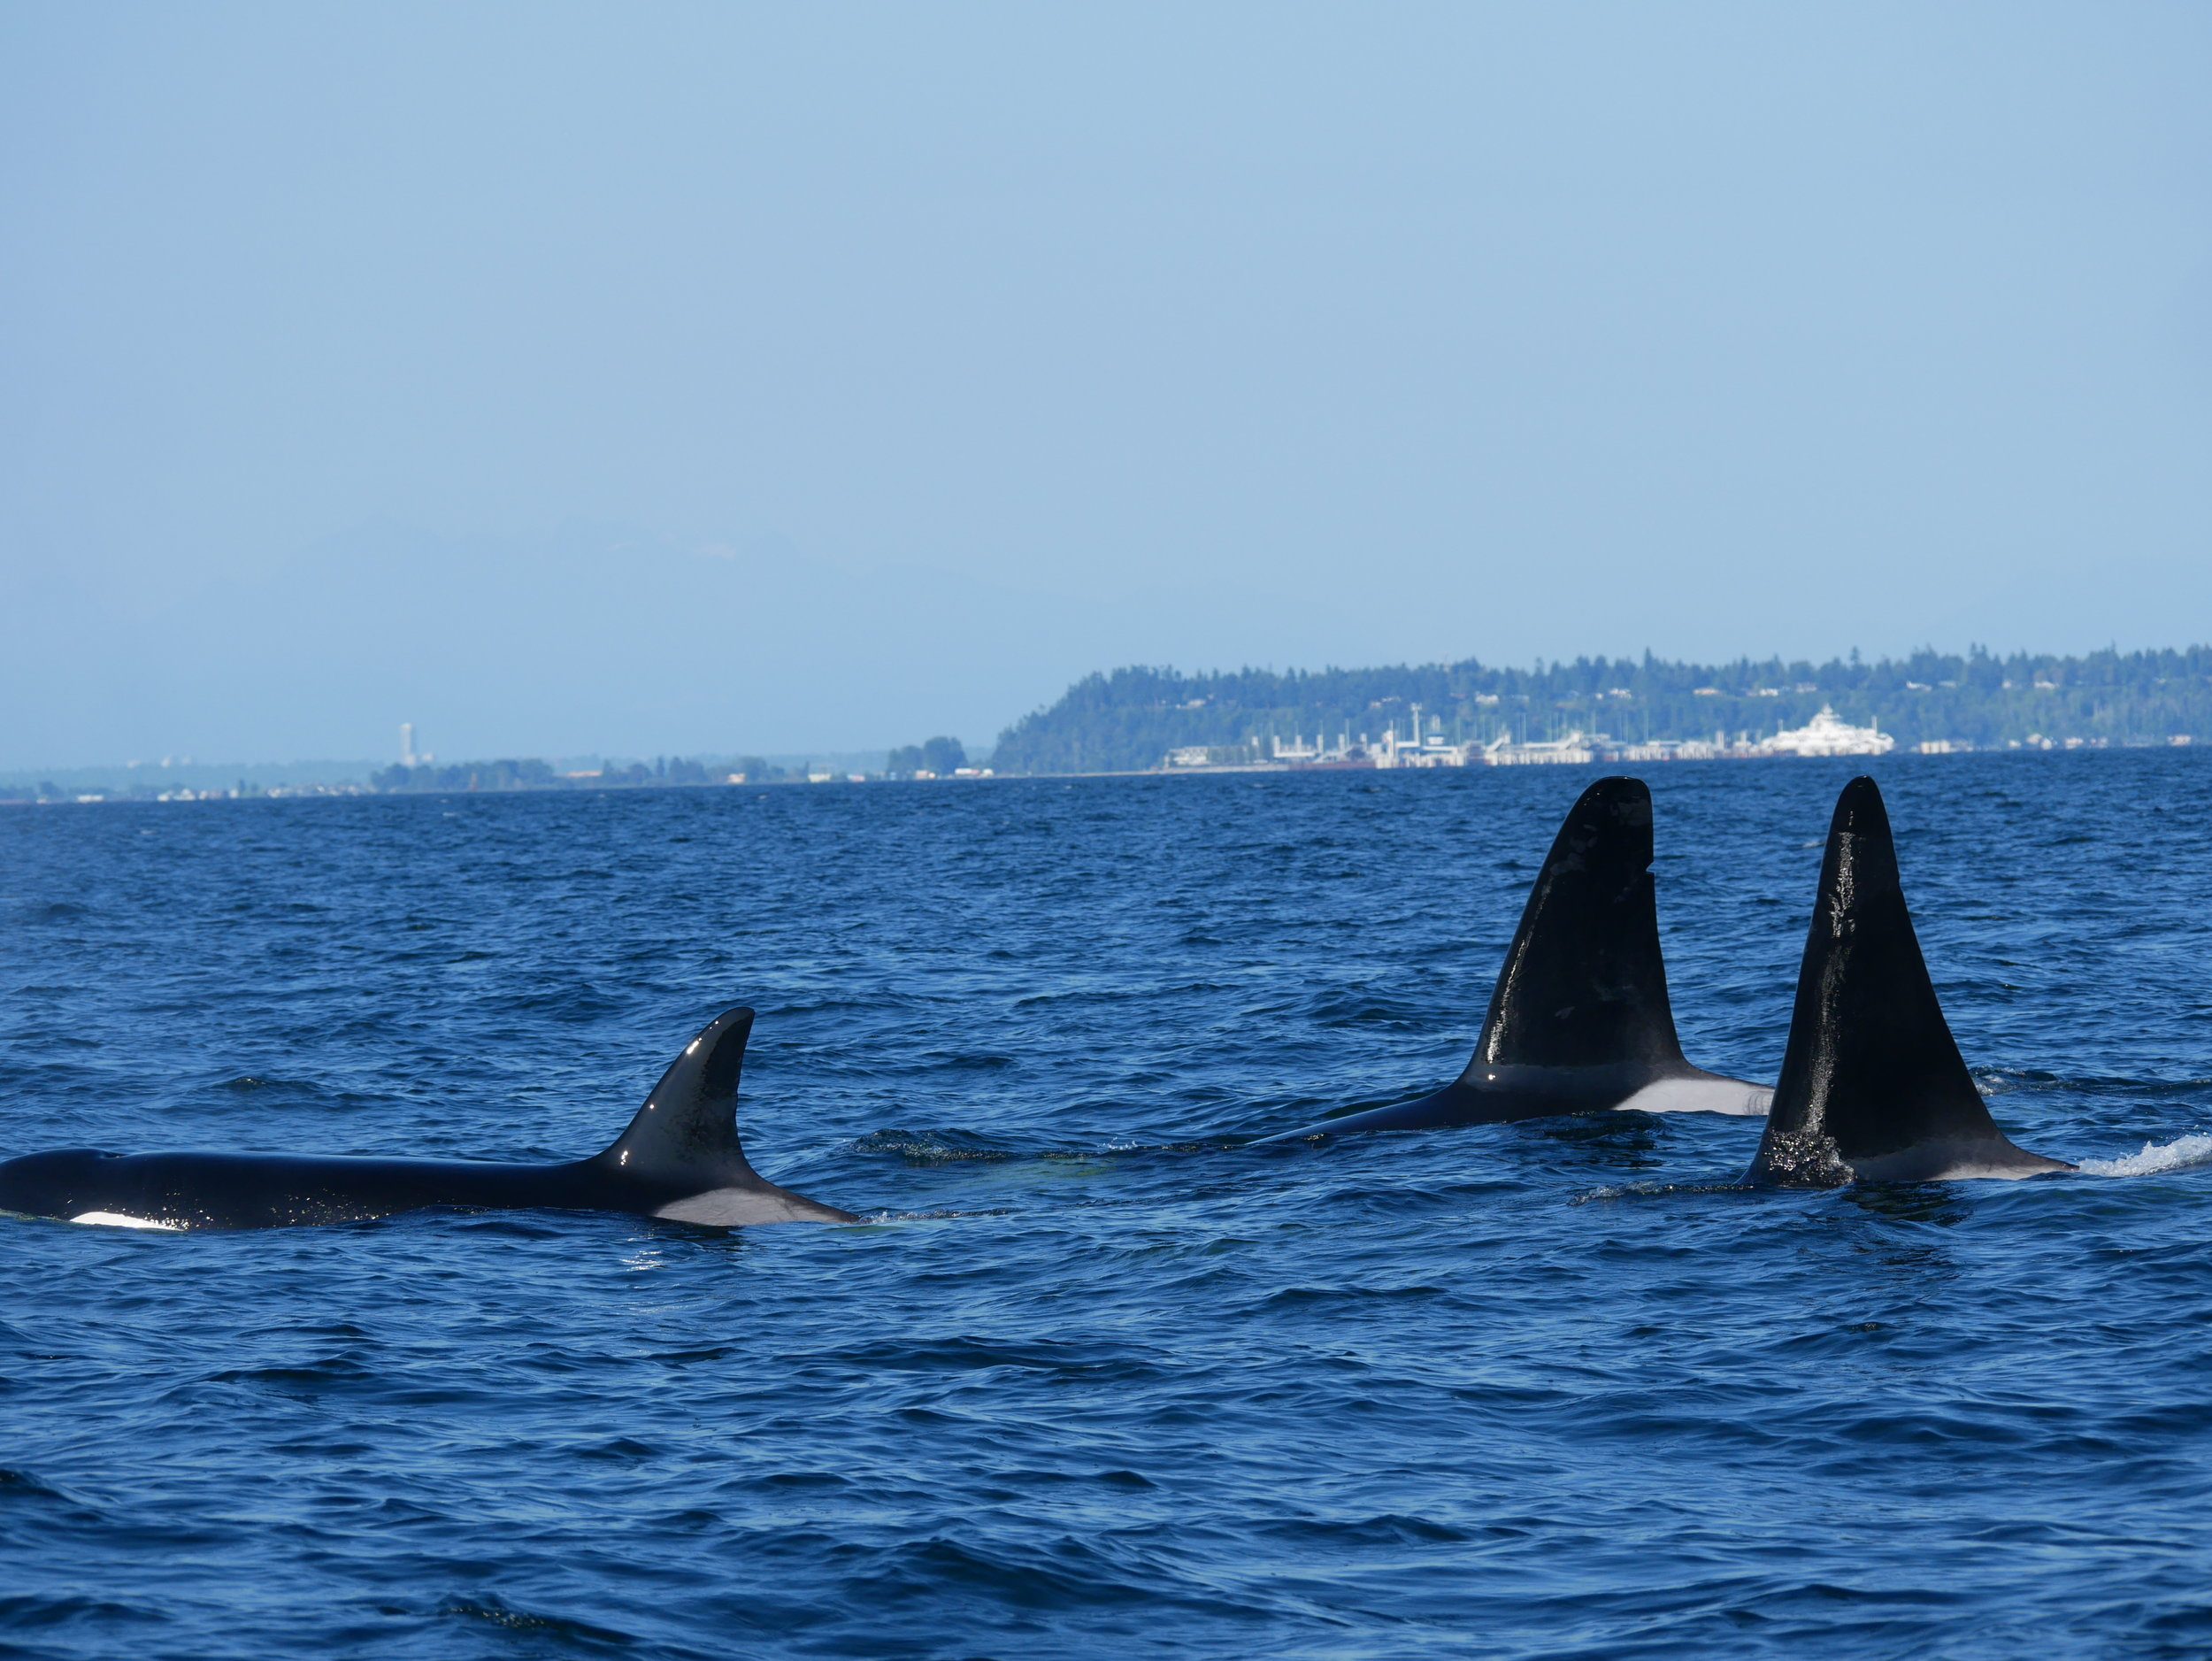 Pictured here is three of the four members of the pod. Named from left to right: T19 (Mooya), T19B, and T19C (Spouter). Photo by Val Watson.